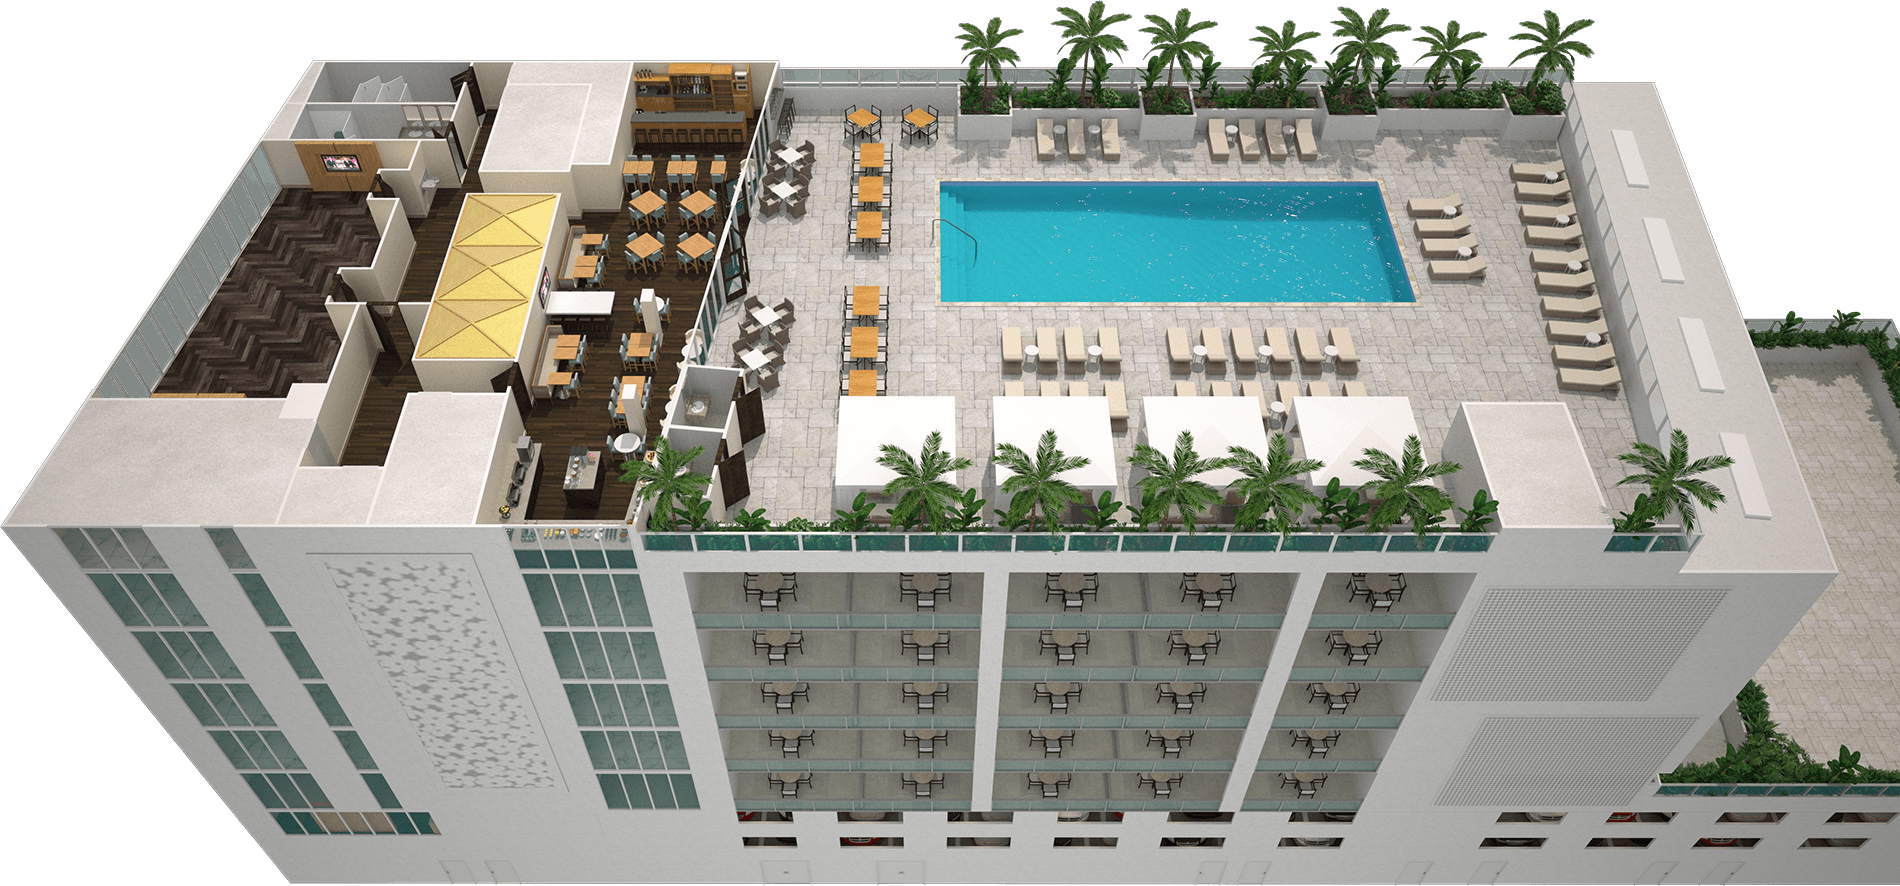 ROOFTOP FLOORPLAN